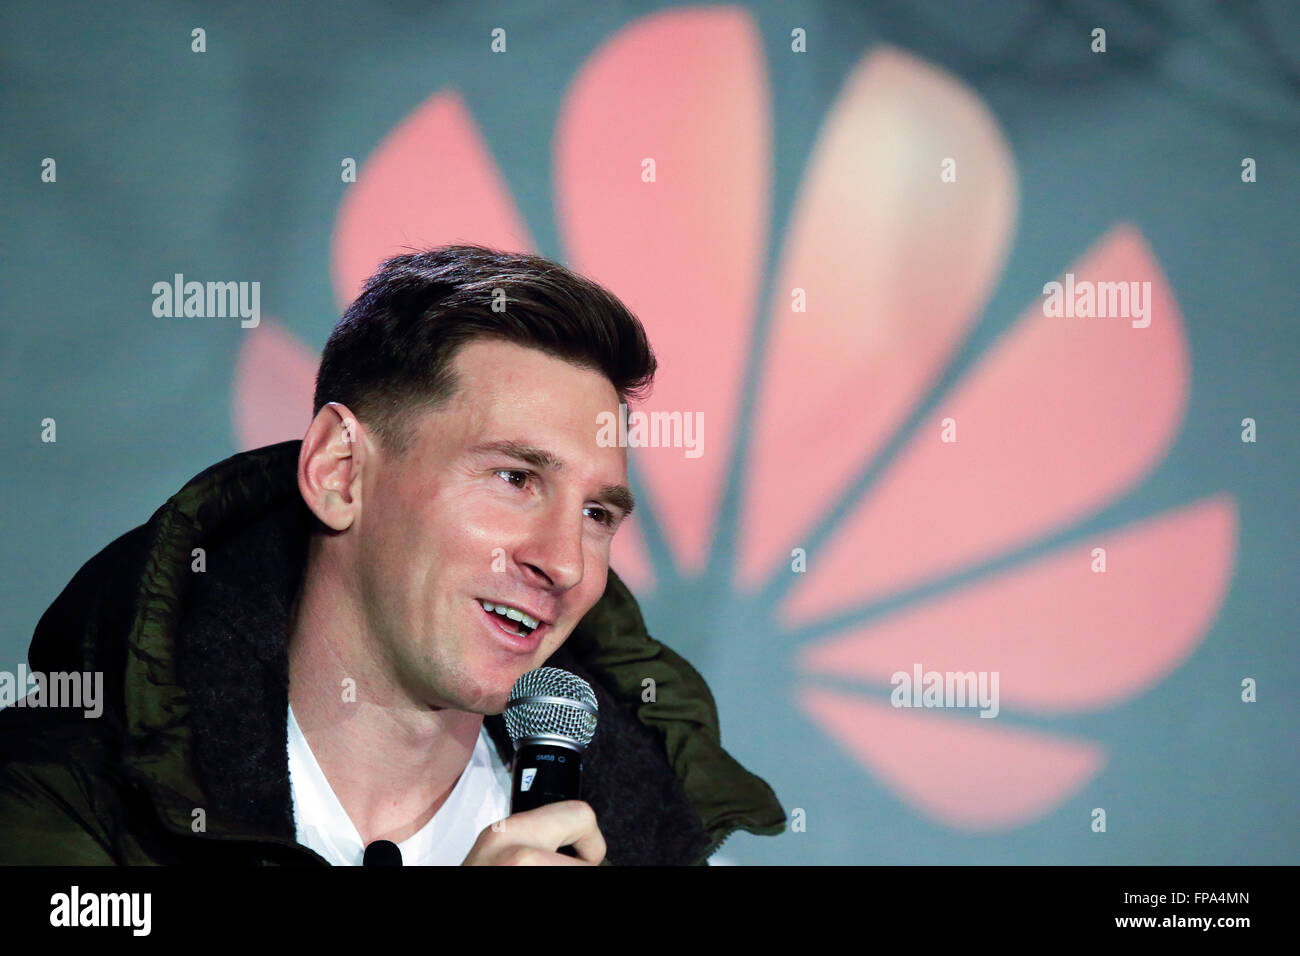 Barcelona, Spain. 17th Mar, 2016. FC Barcelona's Argentinian forward Lionel Messi attends a press conference - Stock Image